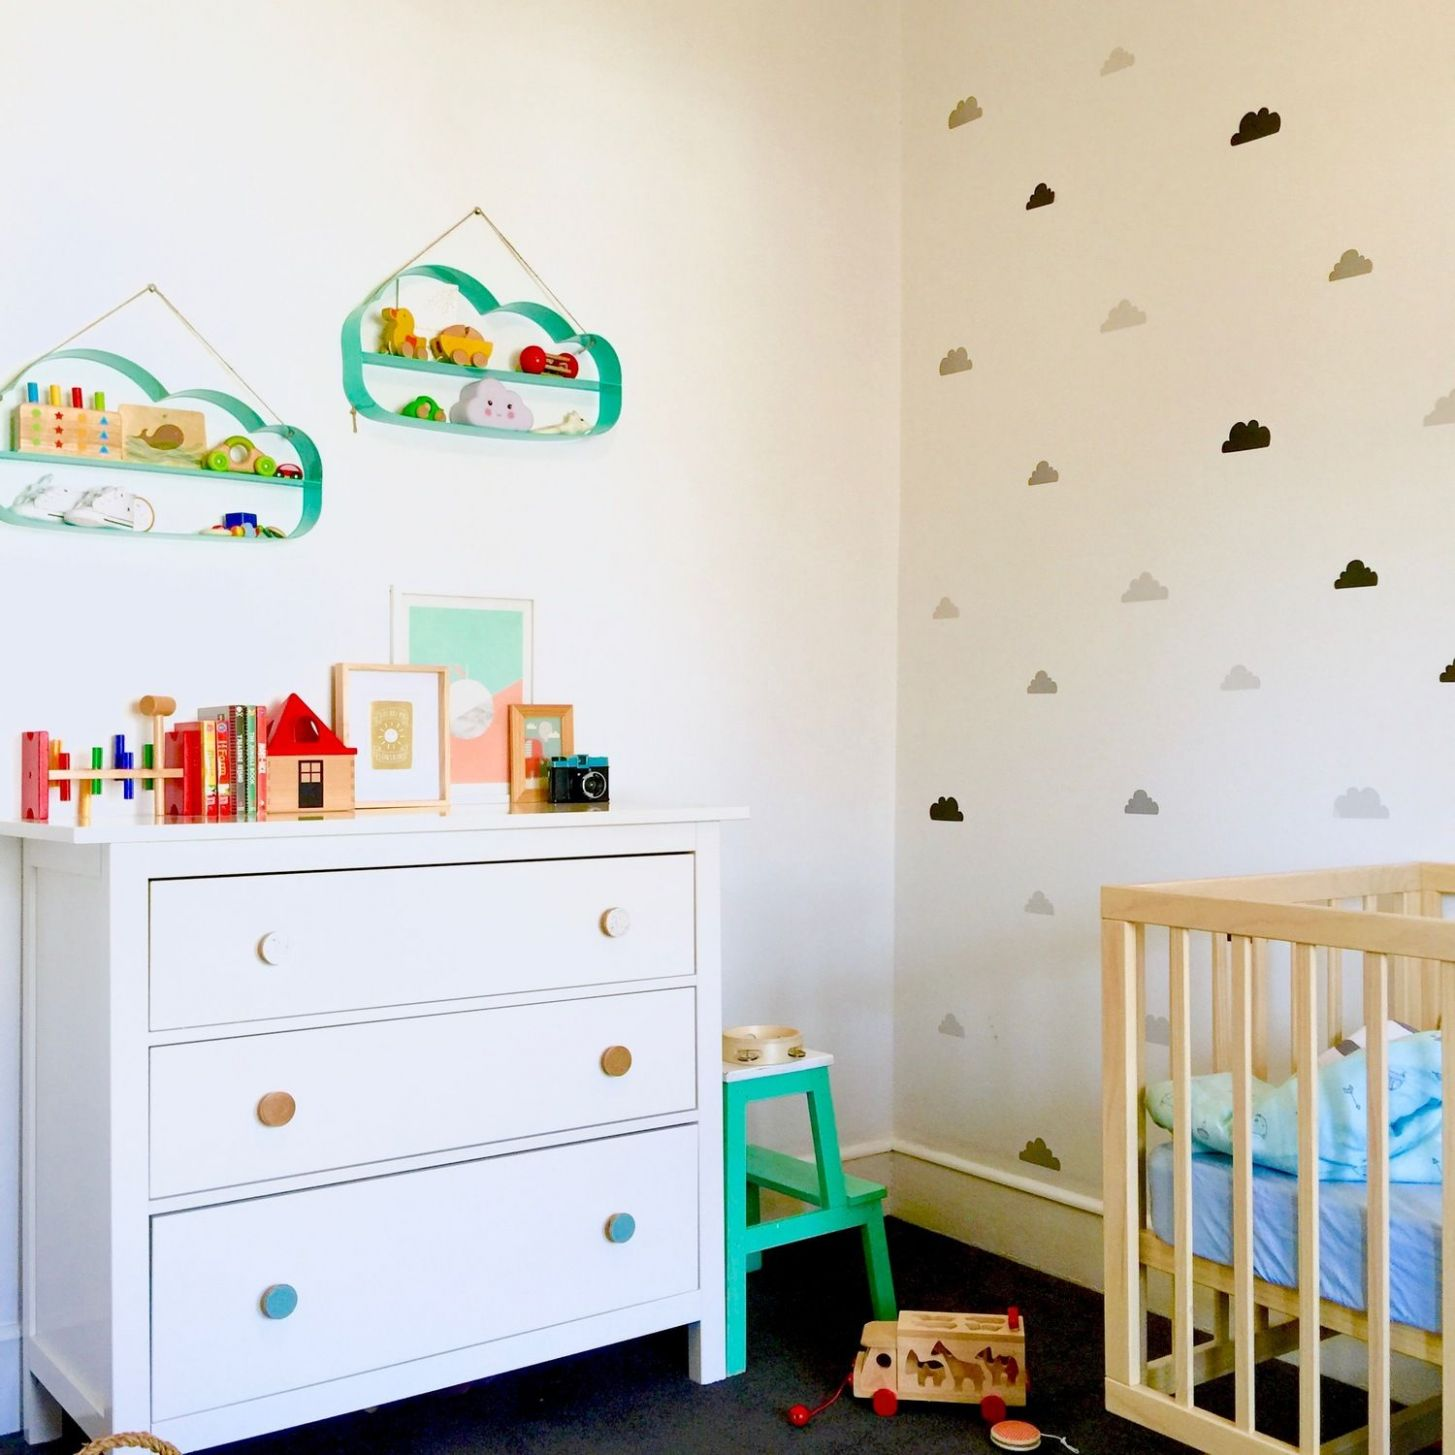 Pin on Baby - baby room knobs